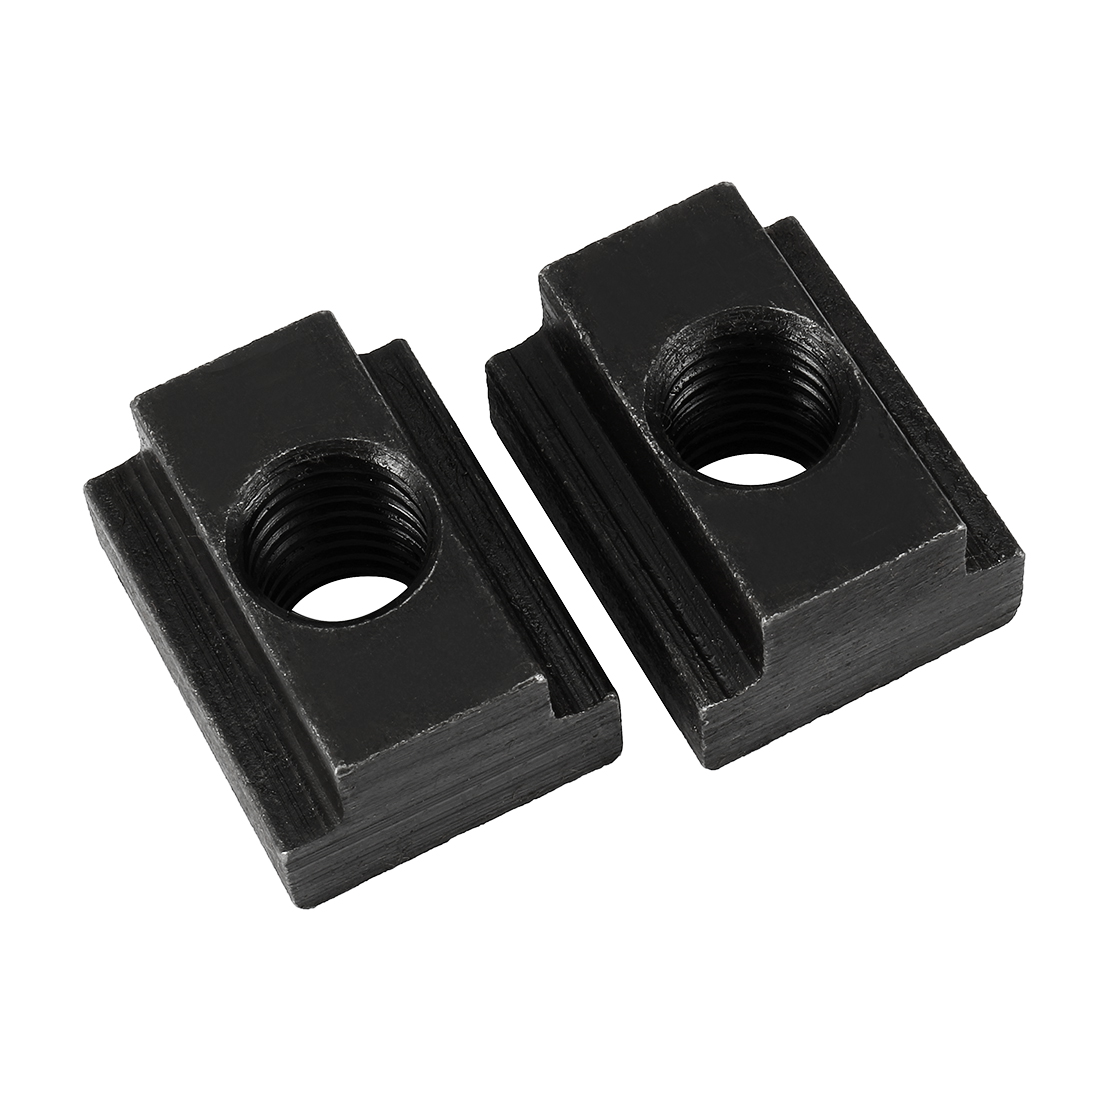 M12 Thread T-Slot Nut Black Oxide Plated Grade 8.8 Tapped Through 2pcs